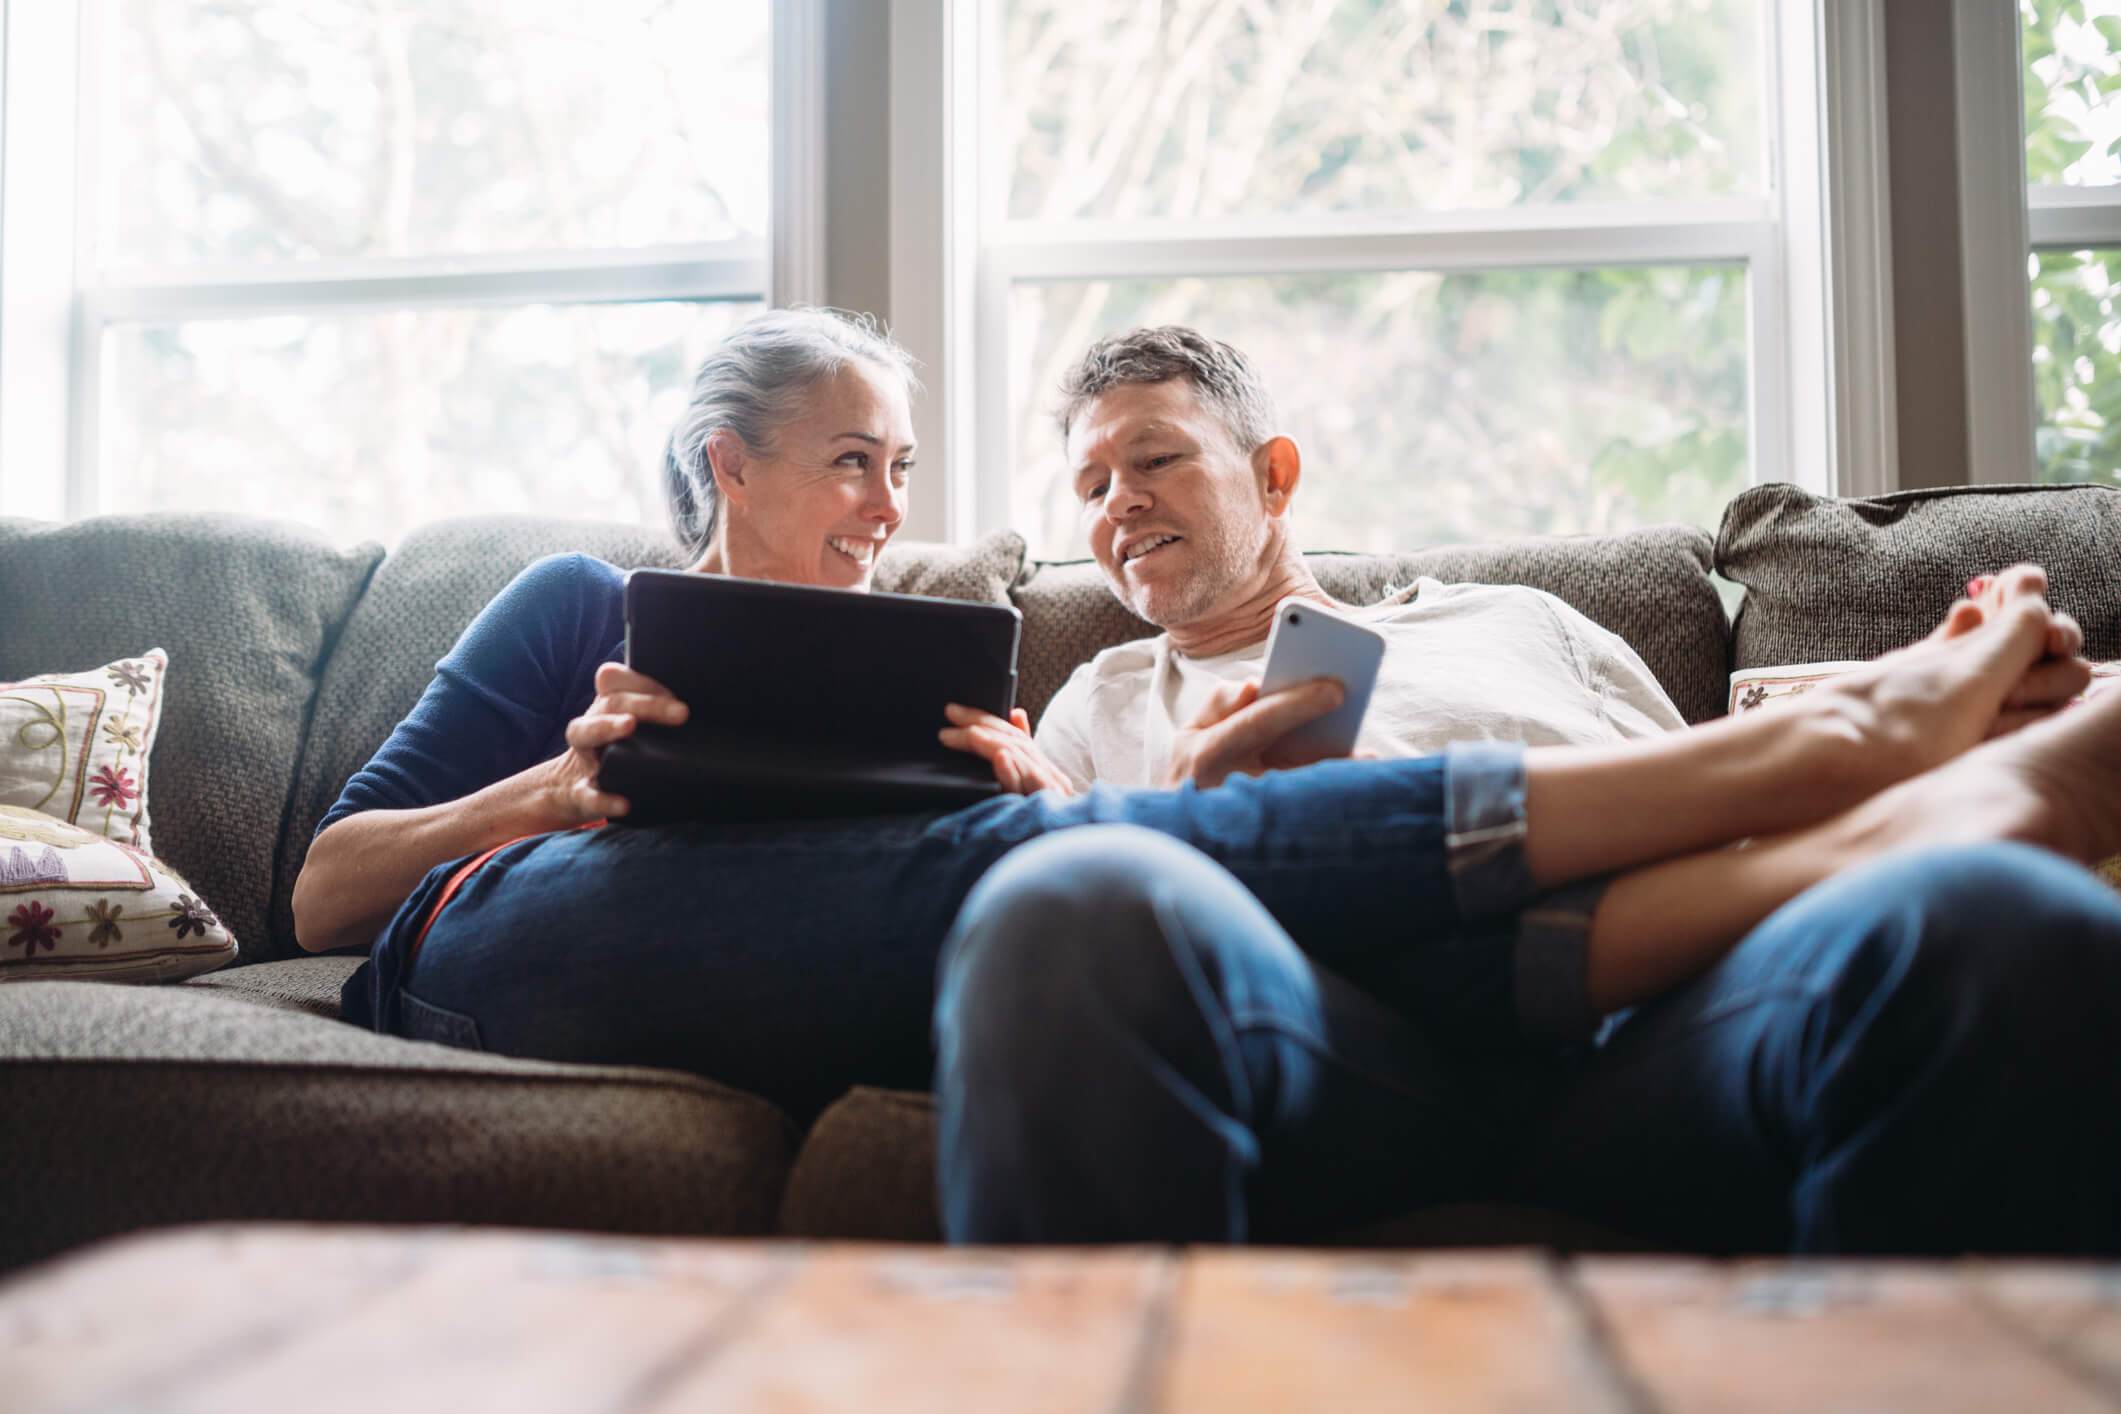 Couple relaxing together on couch